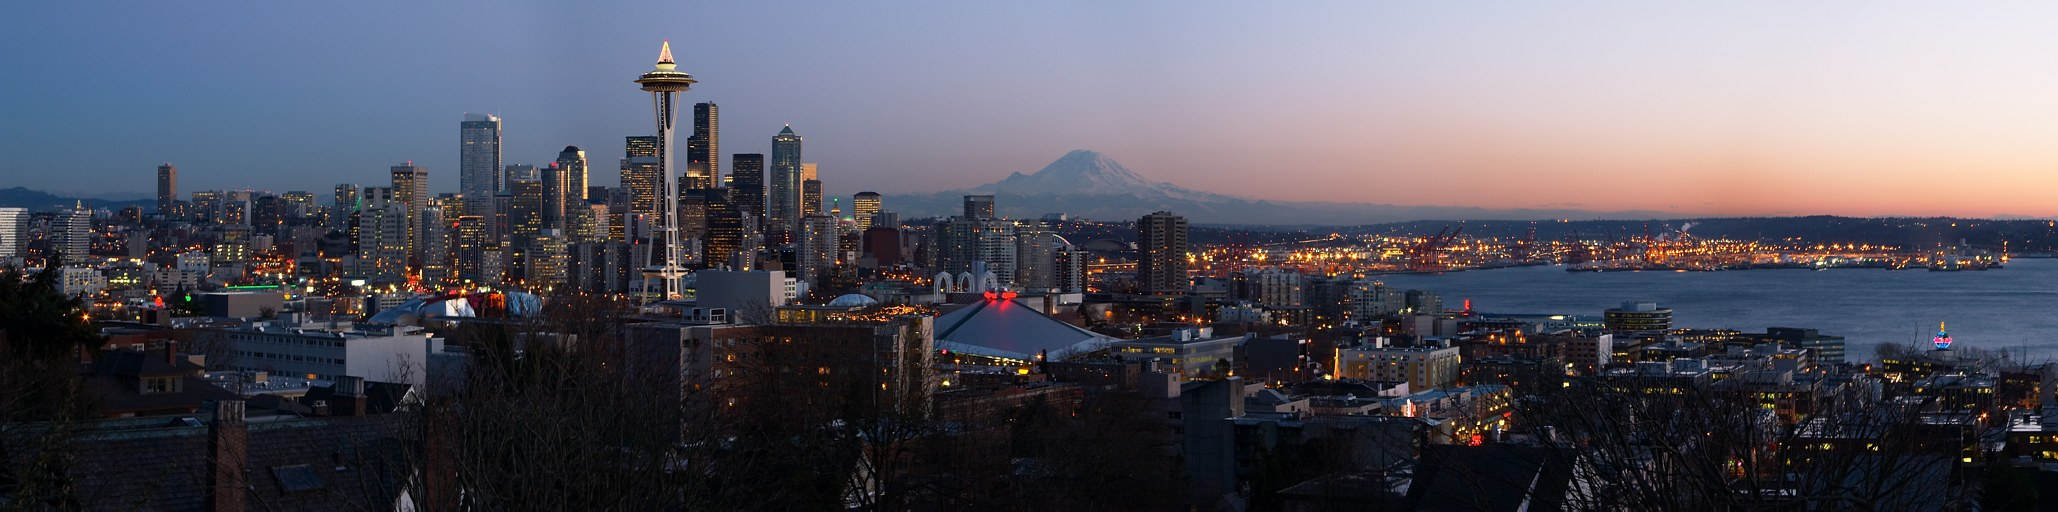 Seattle: seen from Kerry Park, with downtown, Seattle Center with the Space Needle, Mount Rainier, Elliott Bay, and the harbor